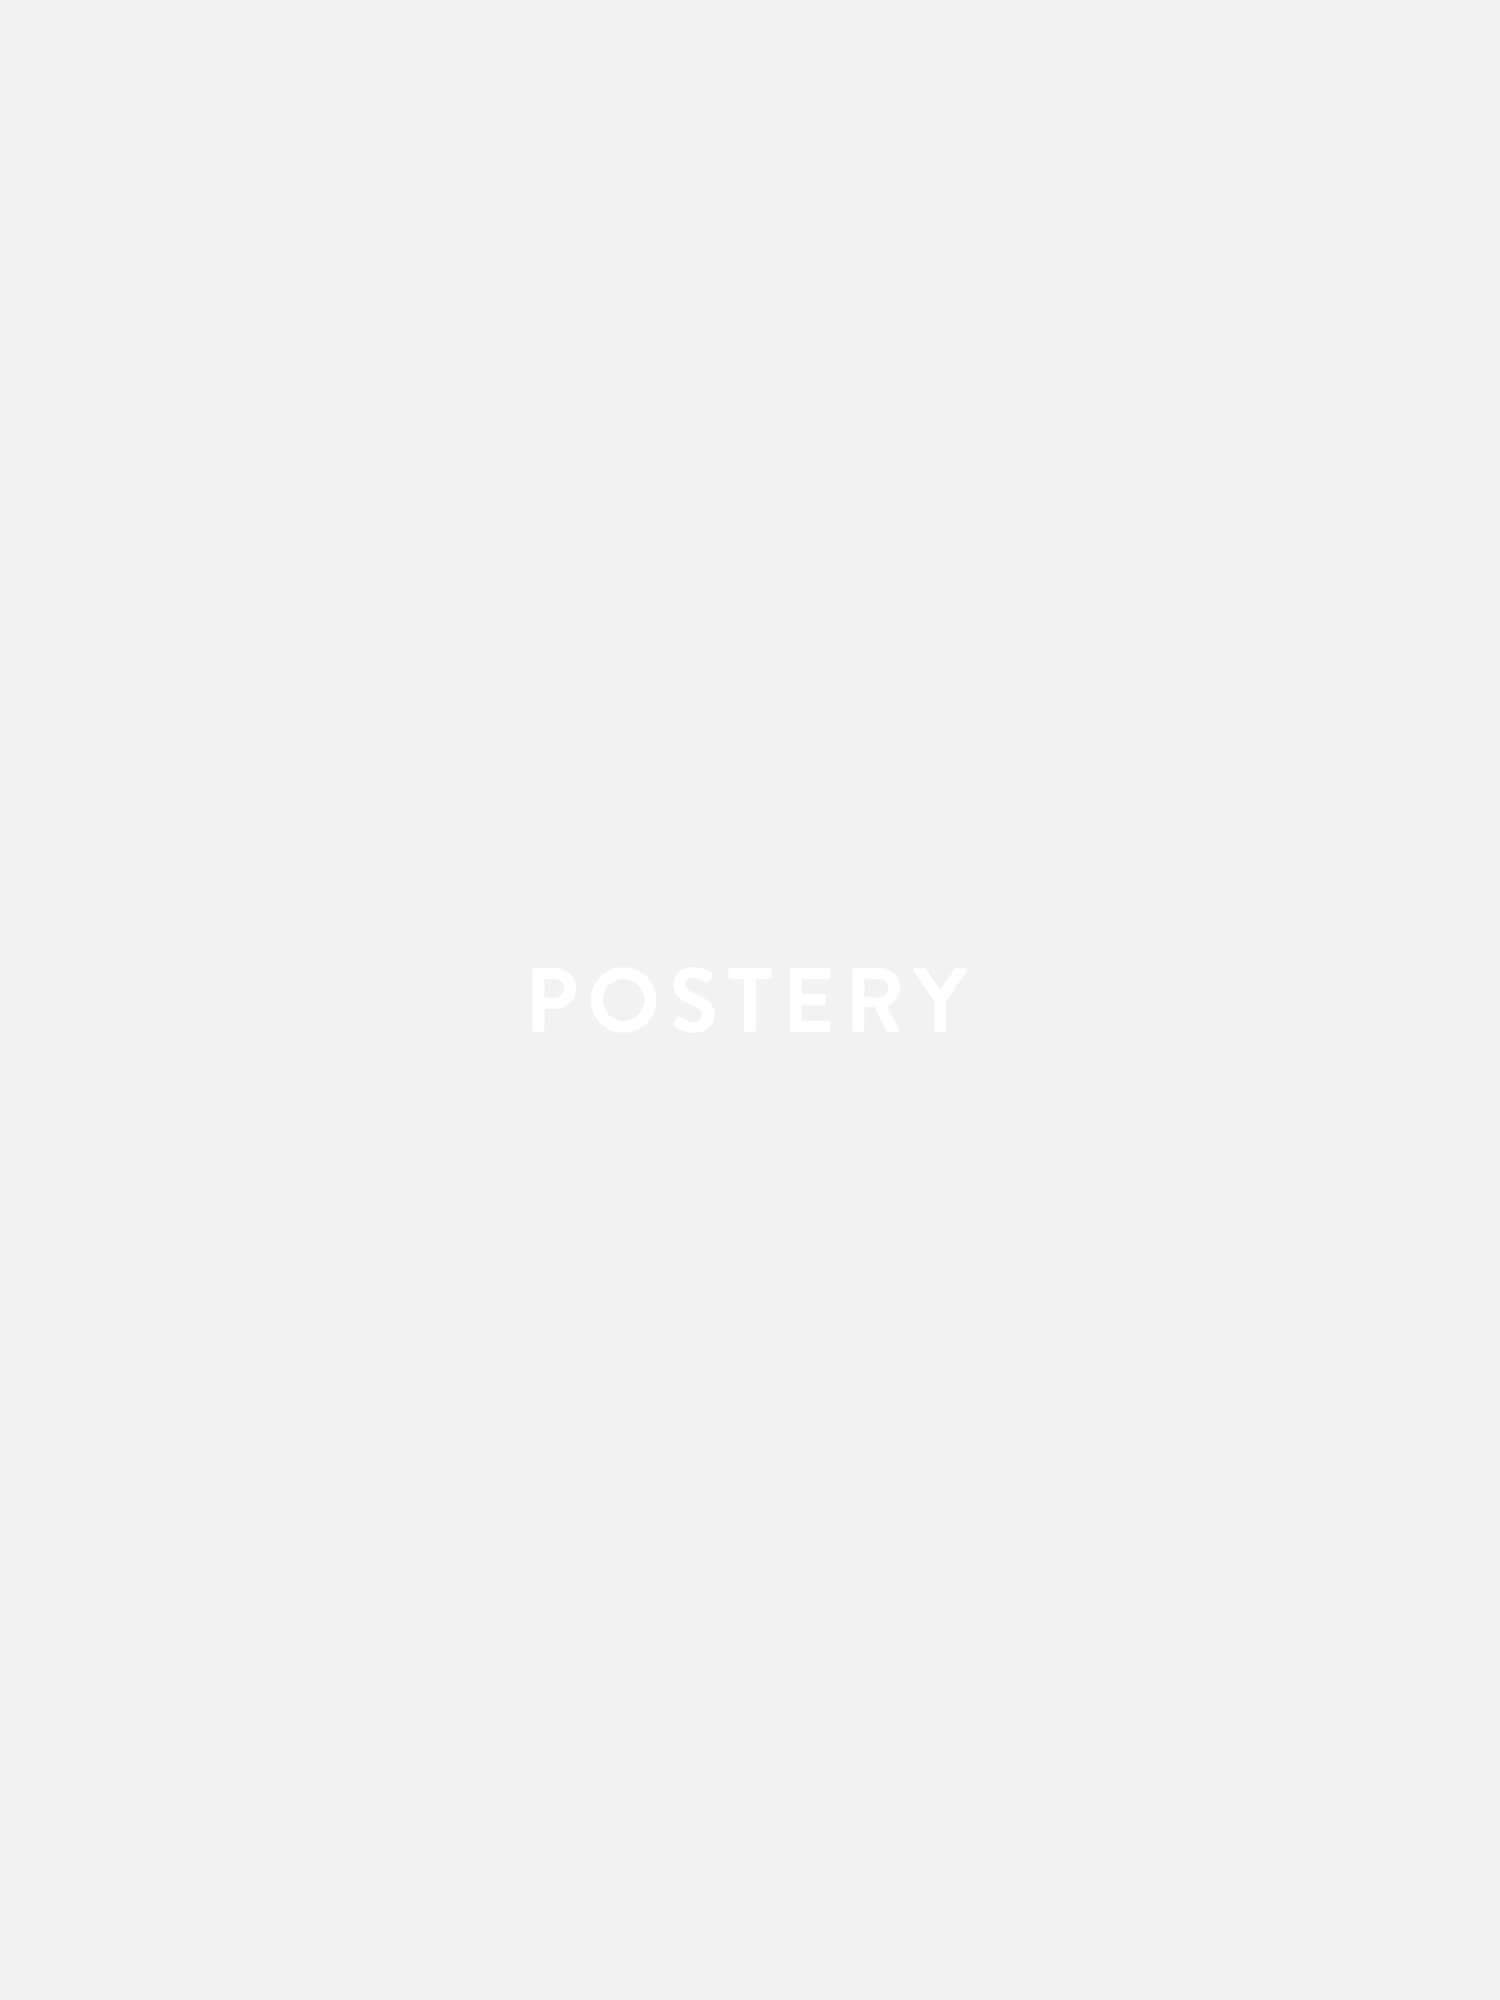 Flying Astronaut Poster